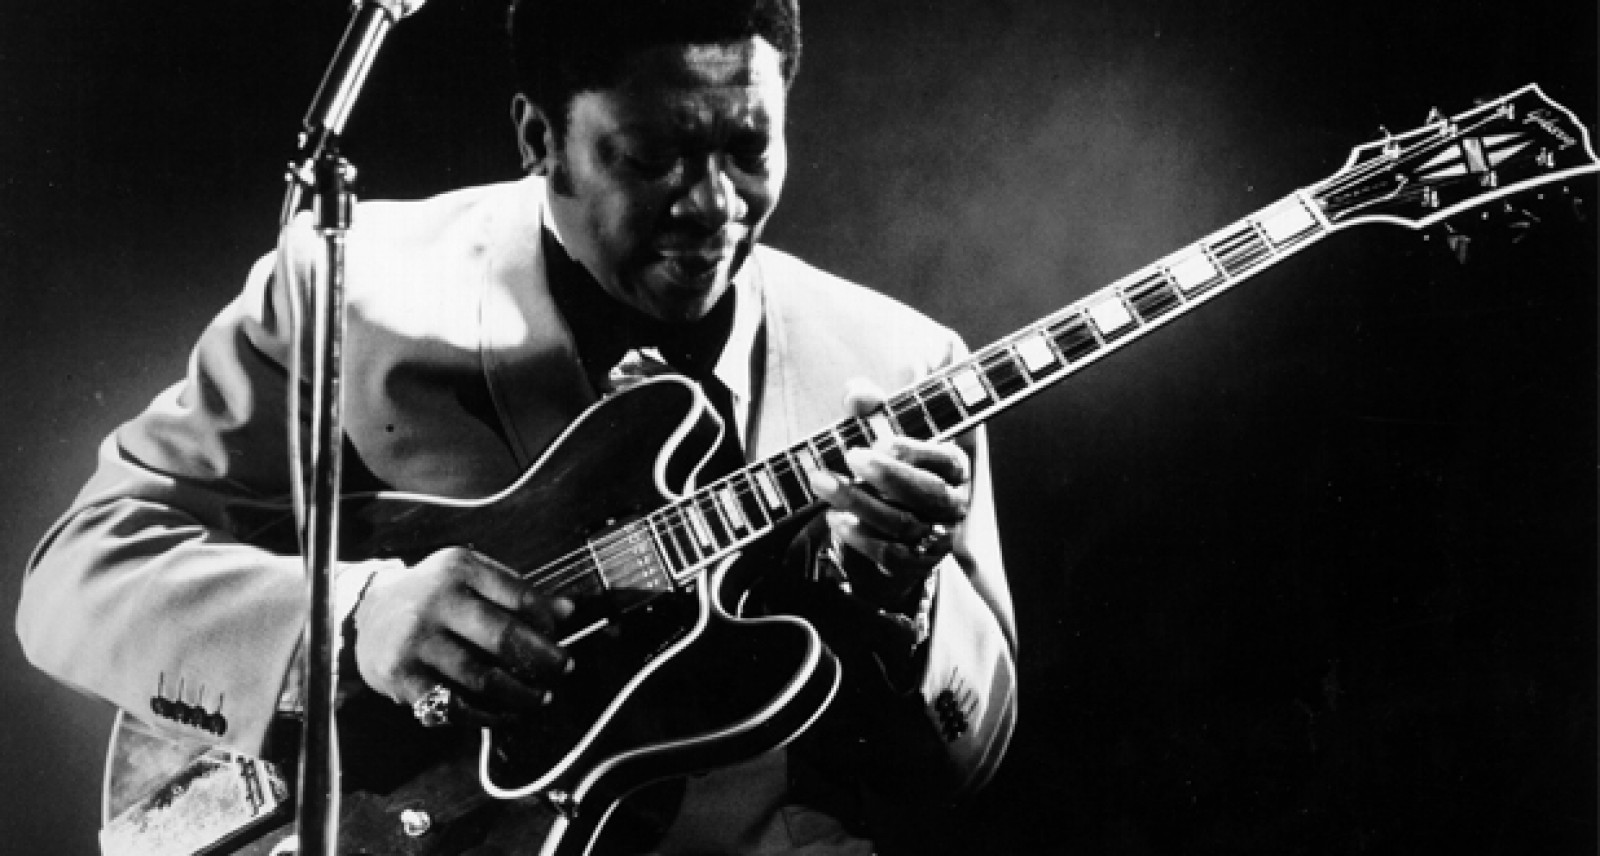 Daily 5 Today We Bid A U To Bb King The King Of Blues Plus More News Worthy Things To Know